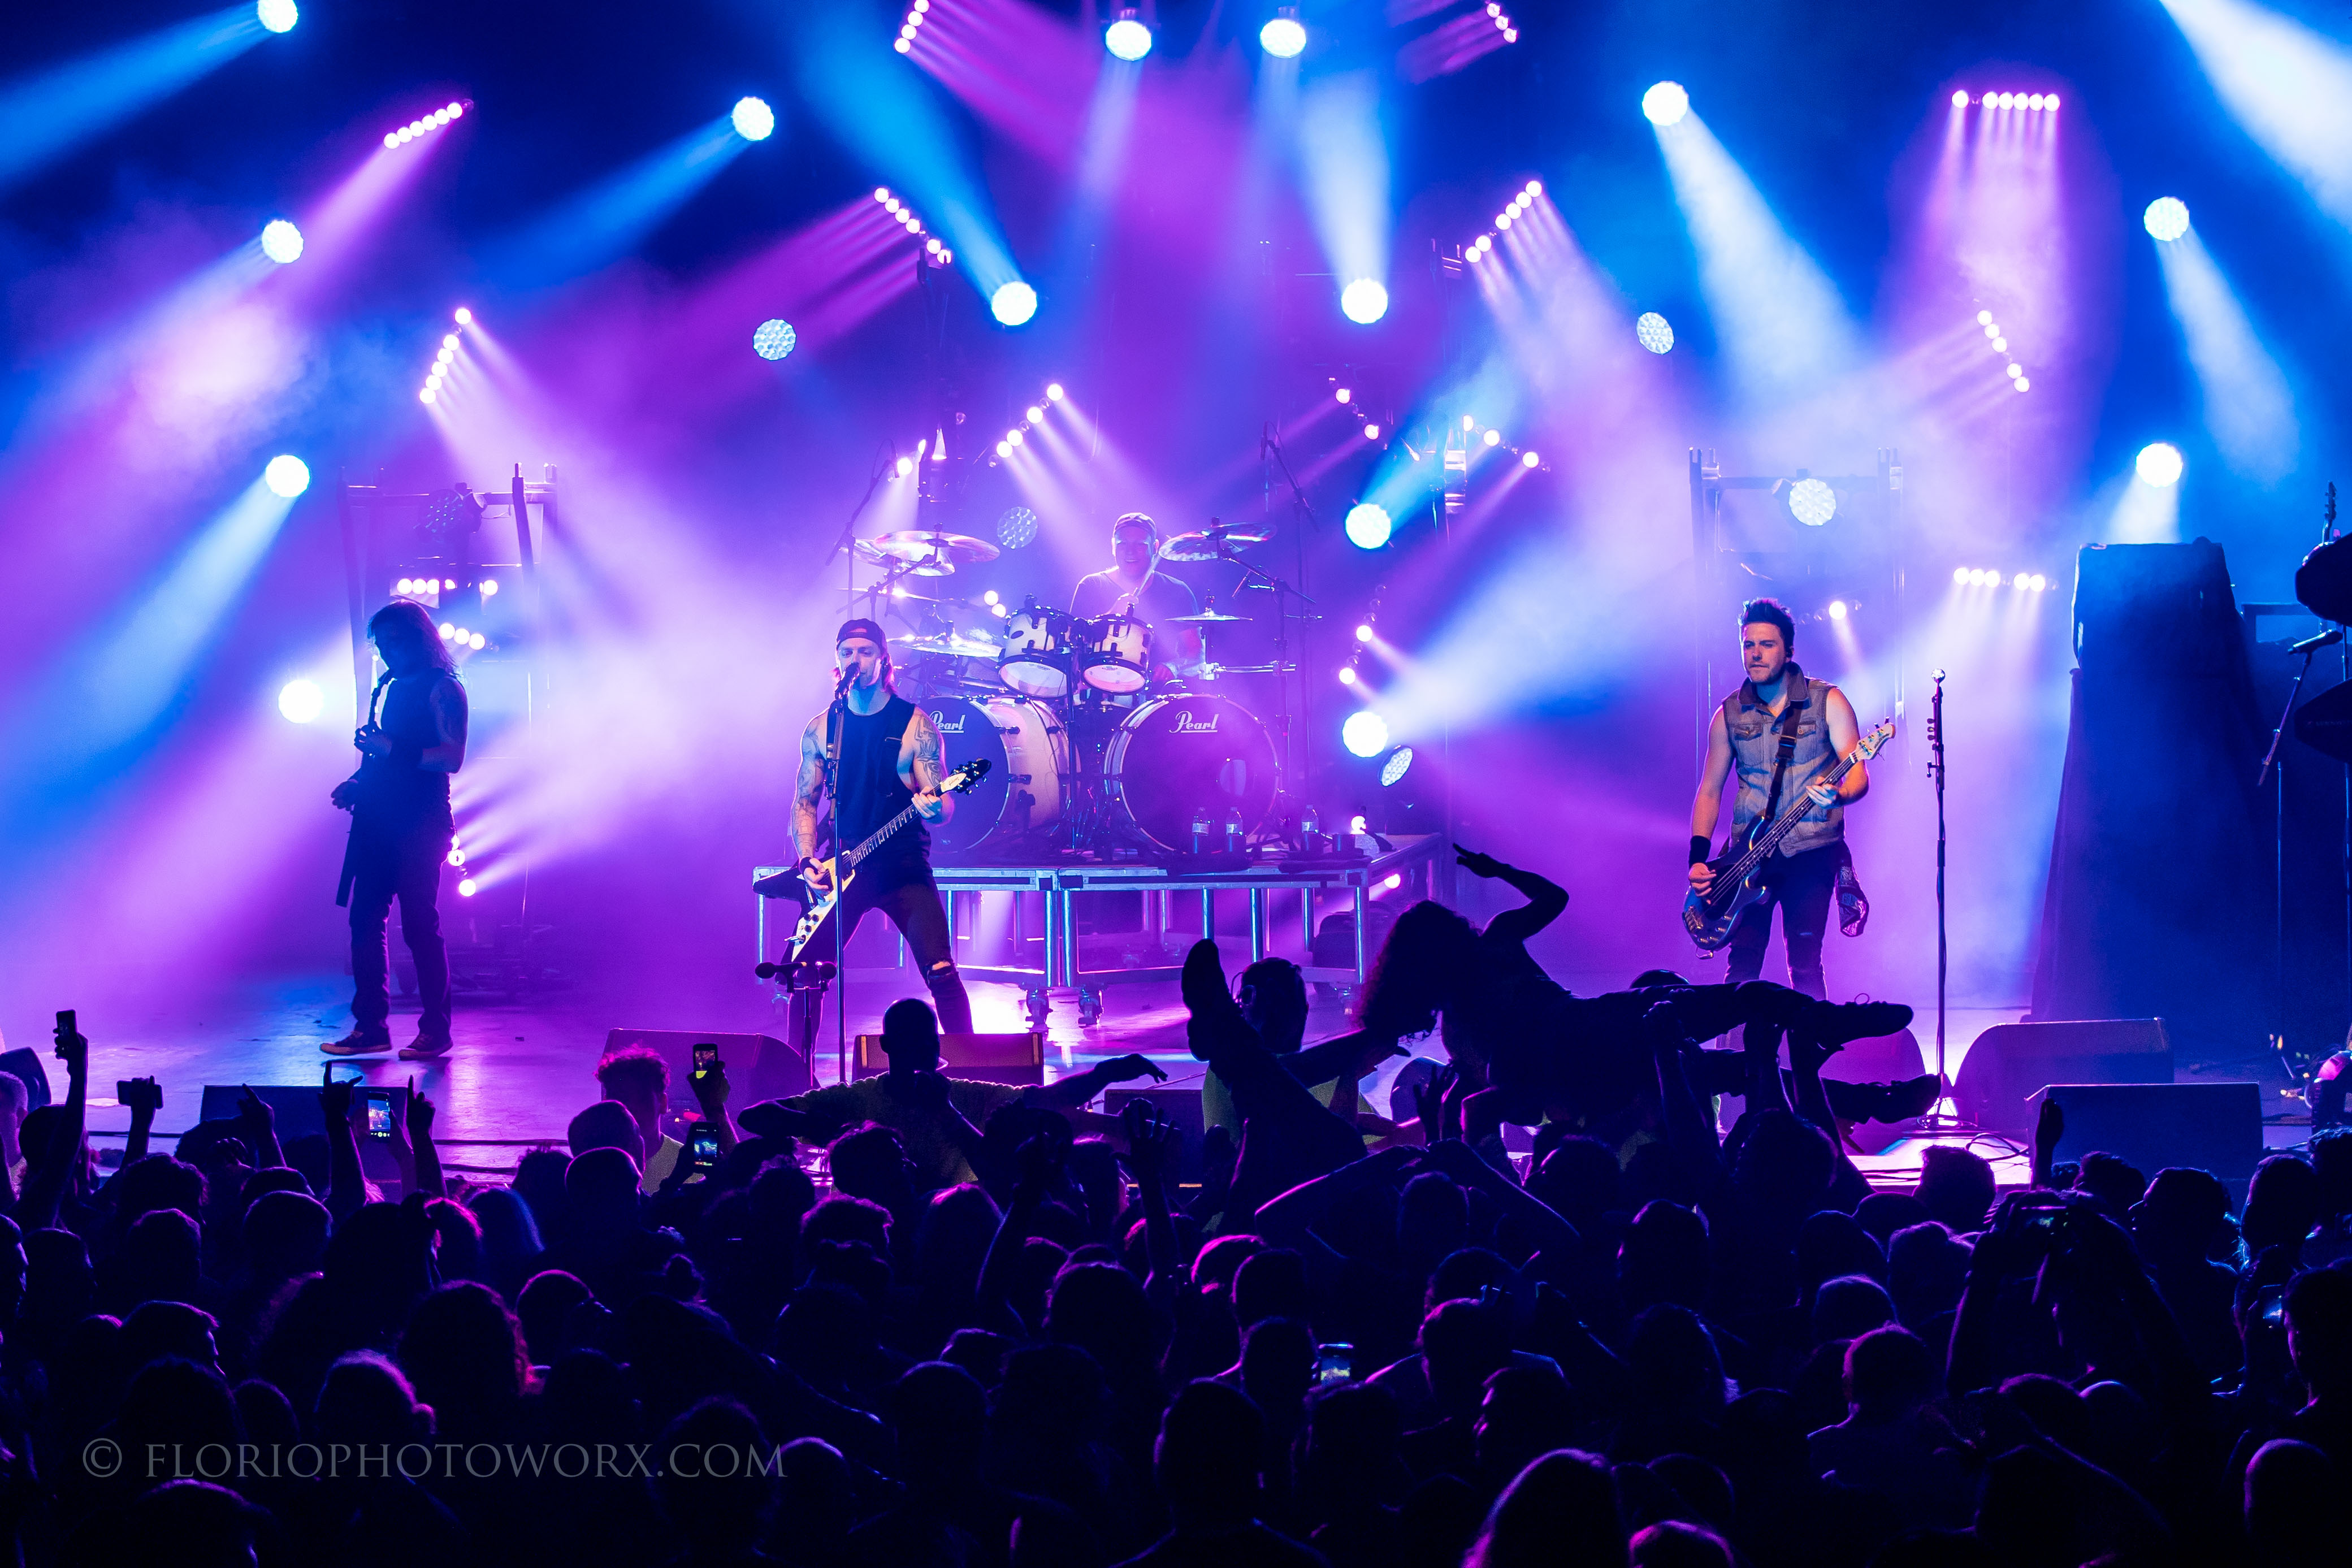 Bullet For My Valentine Archives Through The Lens